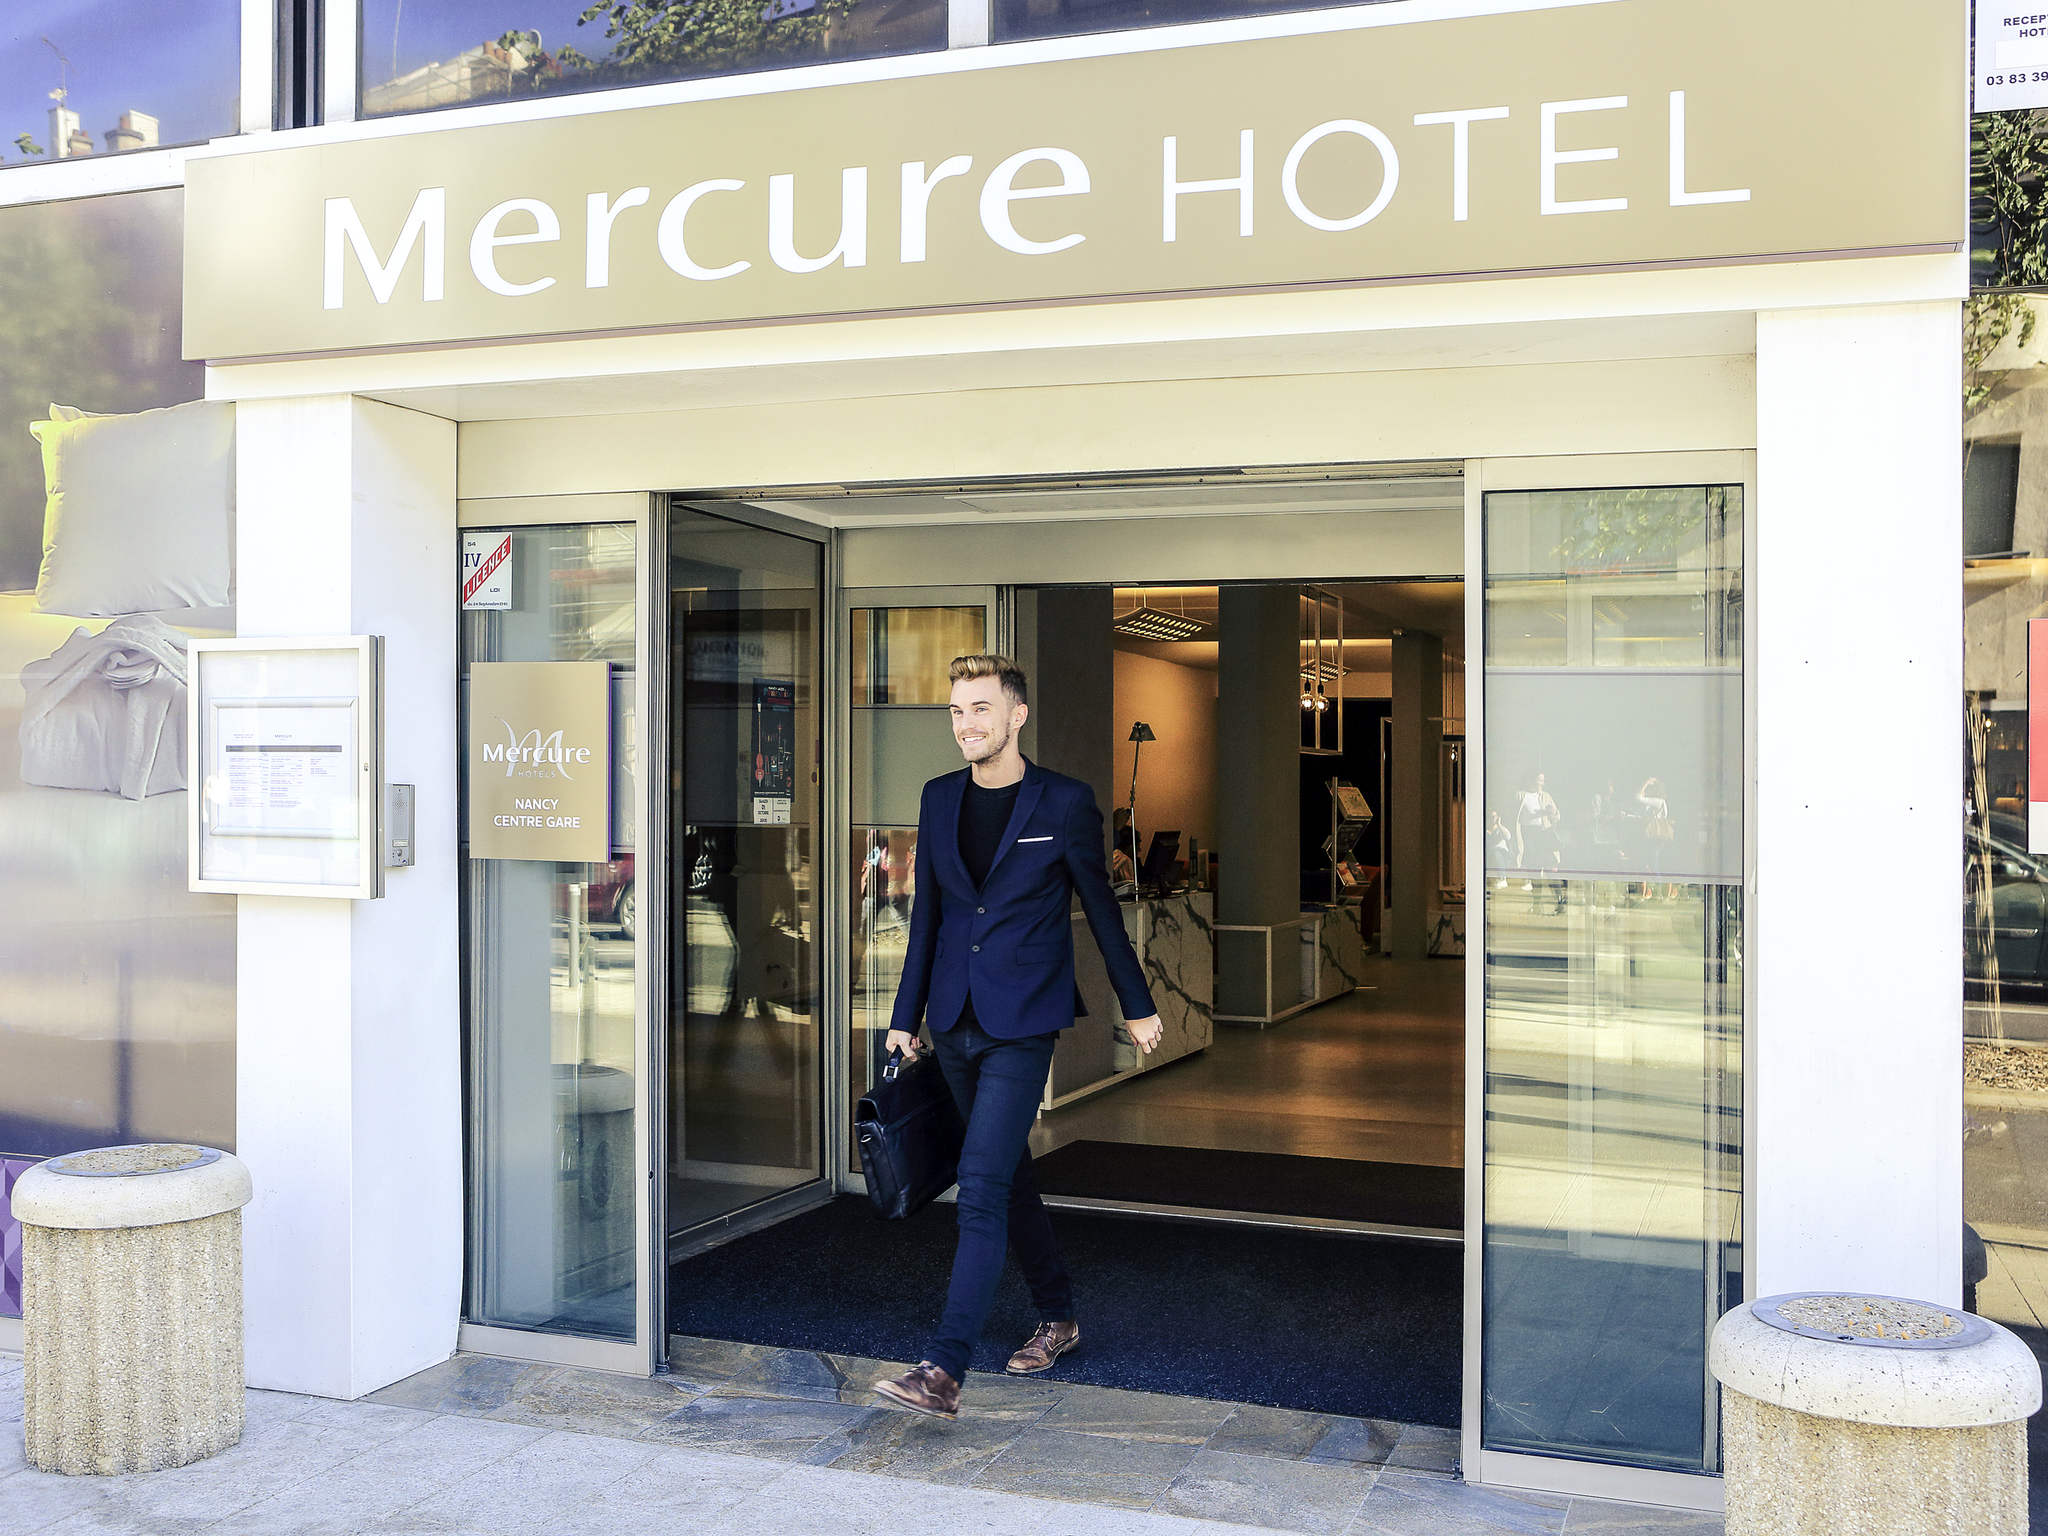 Hotel - Hôtel Mercure Nancy Centre Gare